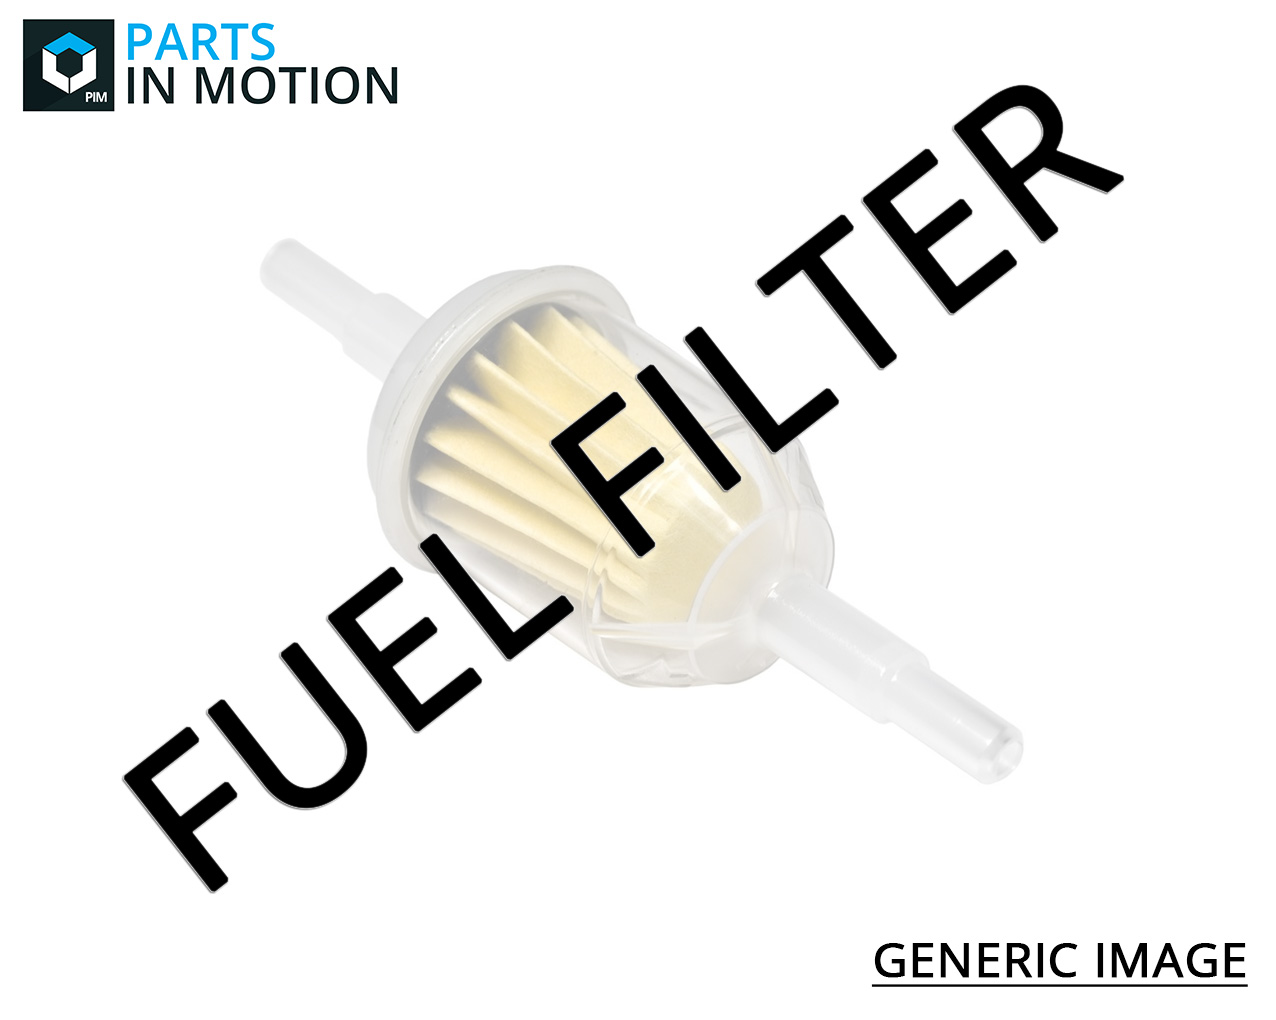 2006 jeep commander fuel filter location | wiring library 2006 jeep commander fuel filter